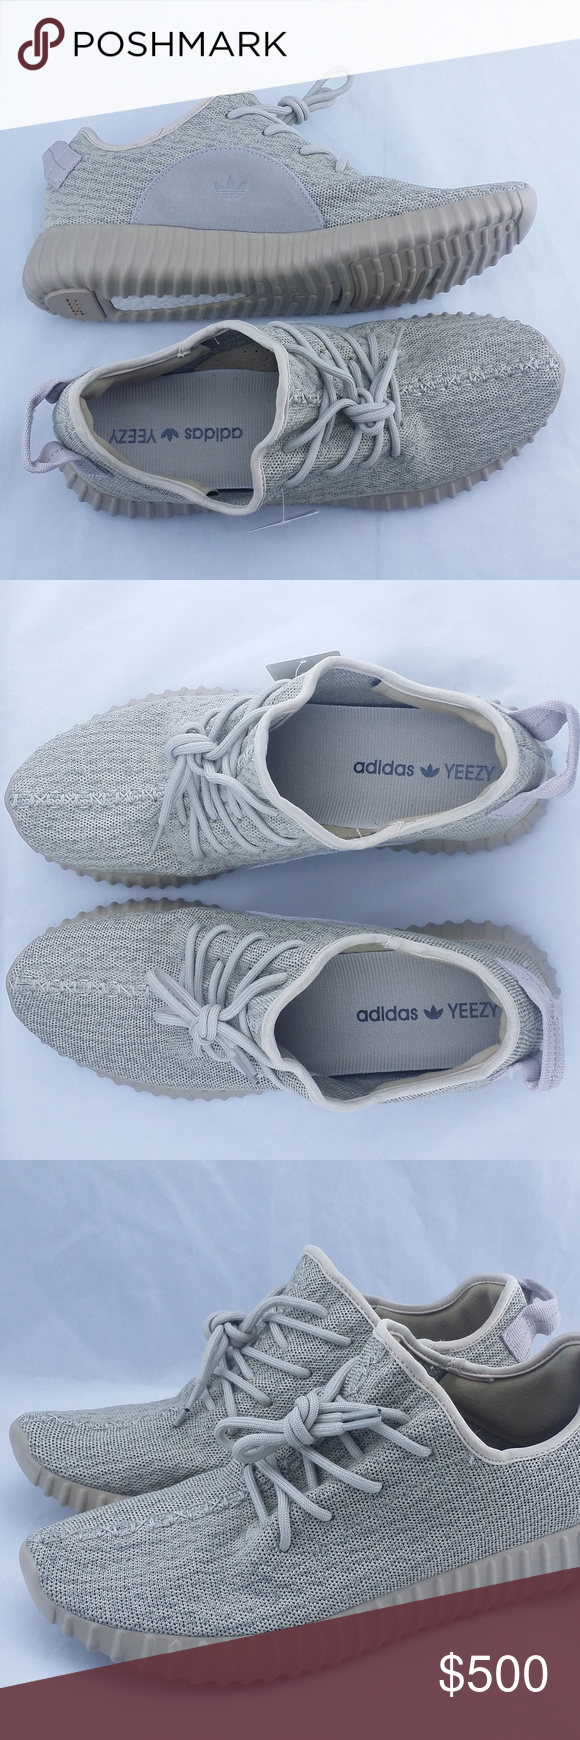 newest d9ee3 3fdec Yeezy Boost 350 Oxford Tan Sz 11 Adidas Yeezy V2 Boost Kanye West Core  Color  Oxford Tan Men s Size 11 Brand new without Box Condition Note  minor  factory ...